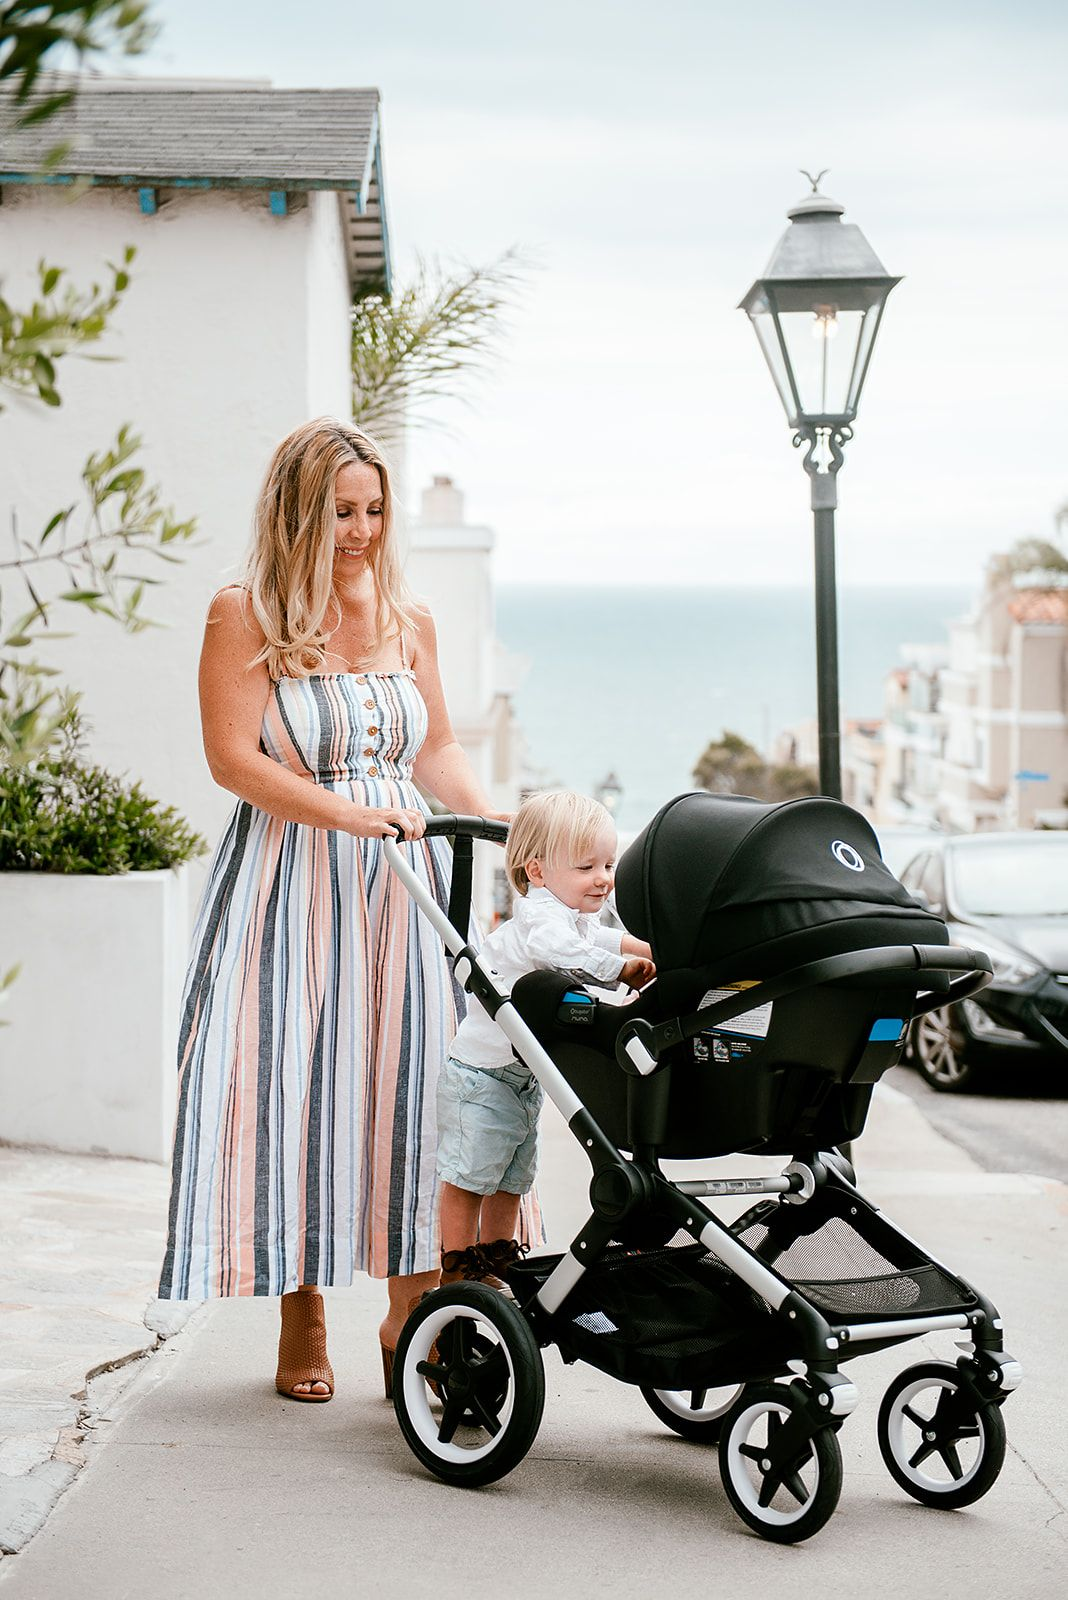 When To Switch From Car Seat To Stroller The Bugaboo Turtle By Nuna Car Seat Seamlessly Connects To